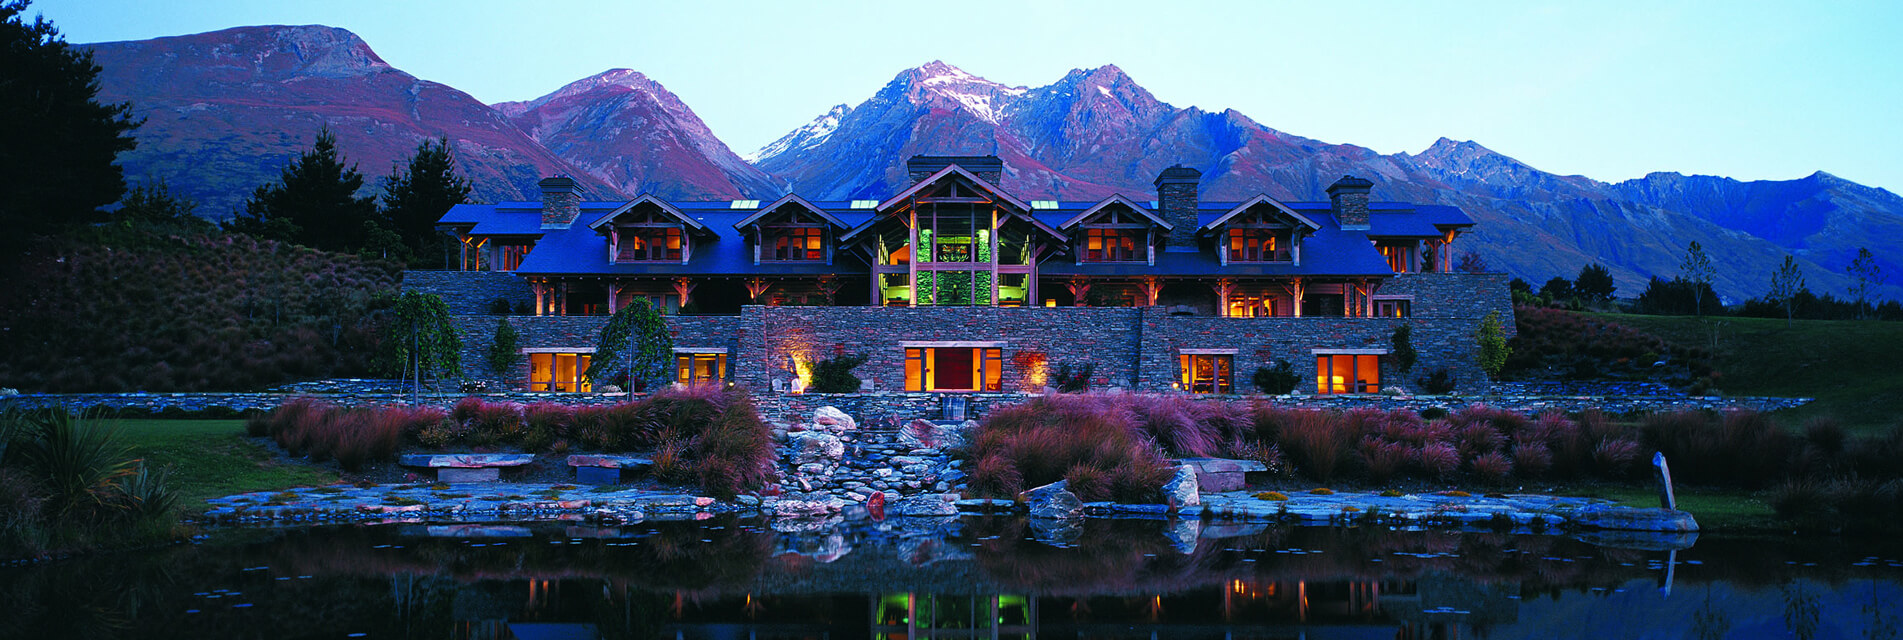 Blanket Bay Lodge Glenorchy New Zealand LR